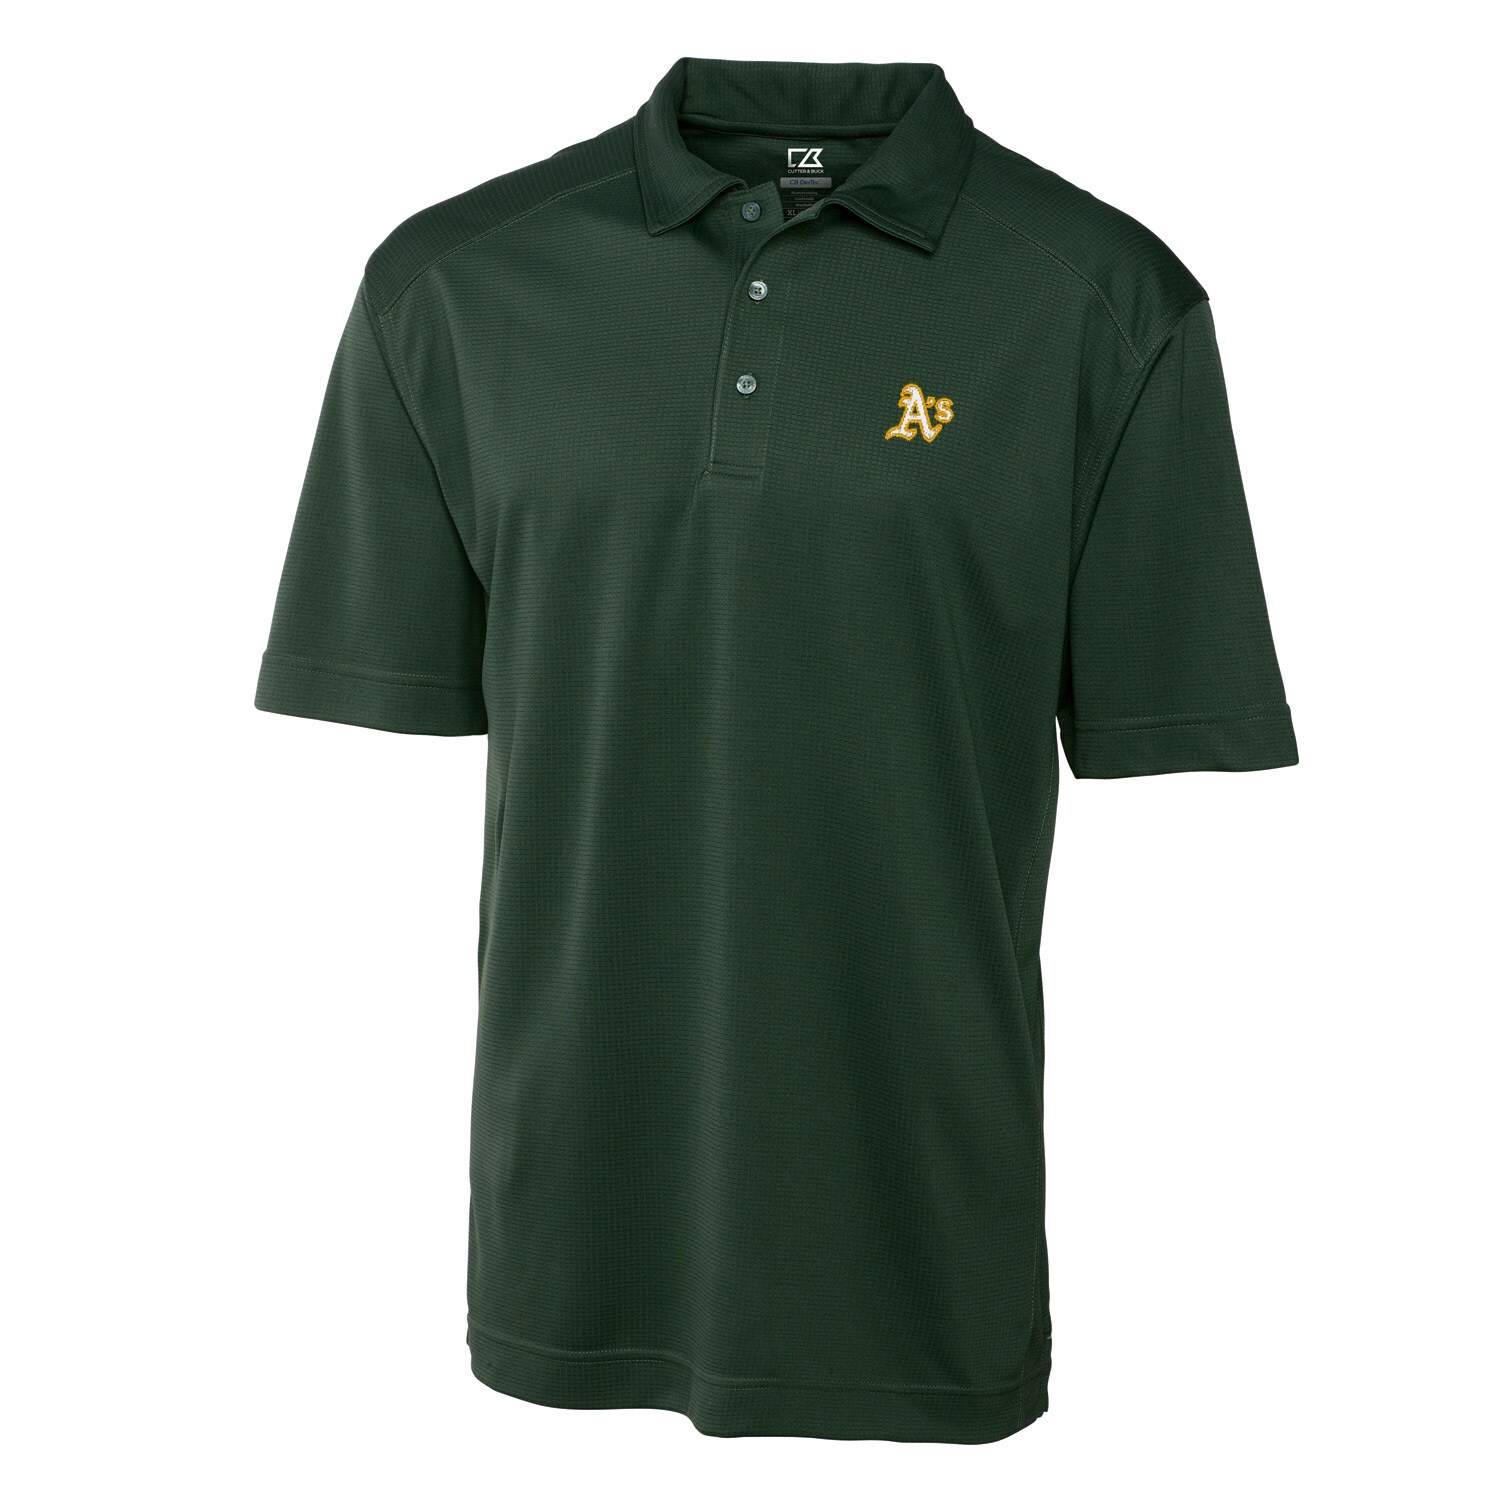 Oakland Athletics Cutter & Buck Big & Tall DryTec Genre Polo - Green